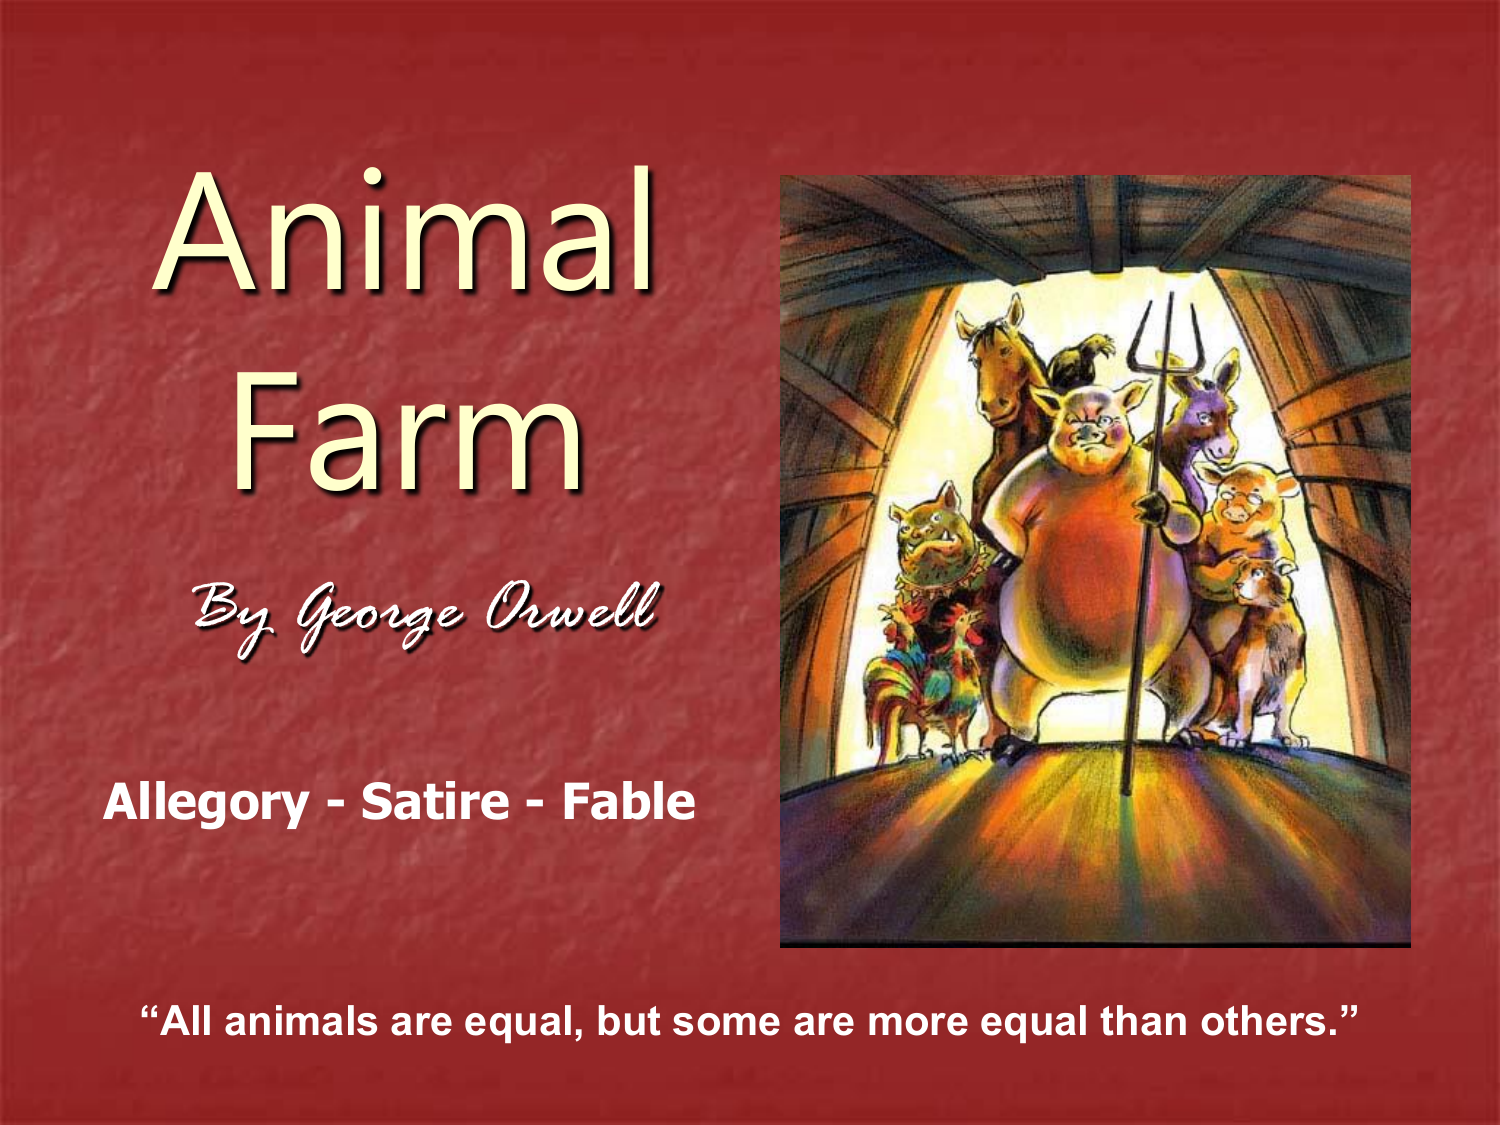 Animal Farm By George Orwell Allegory - Satire - Fable